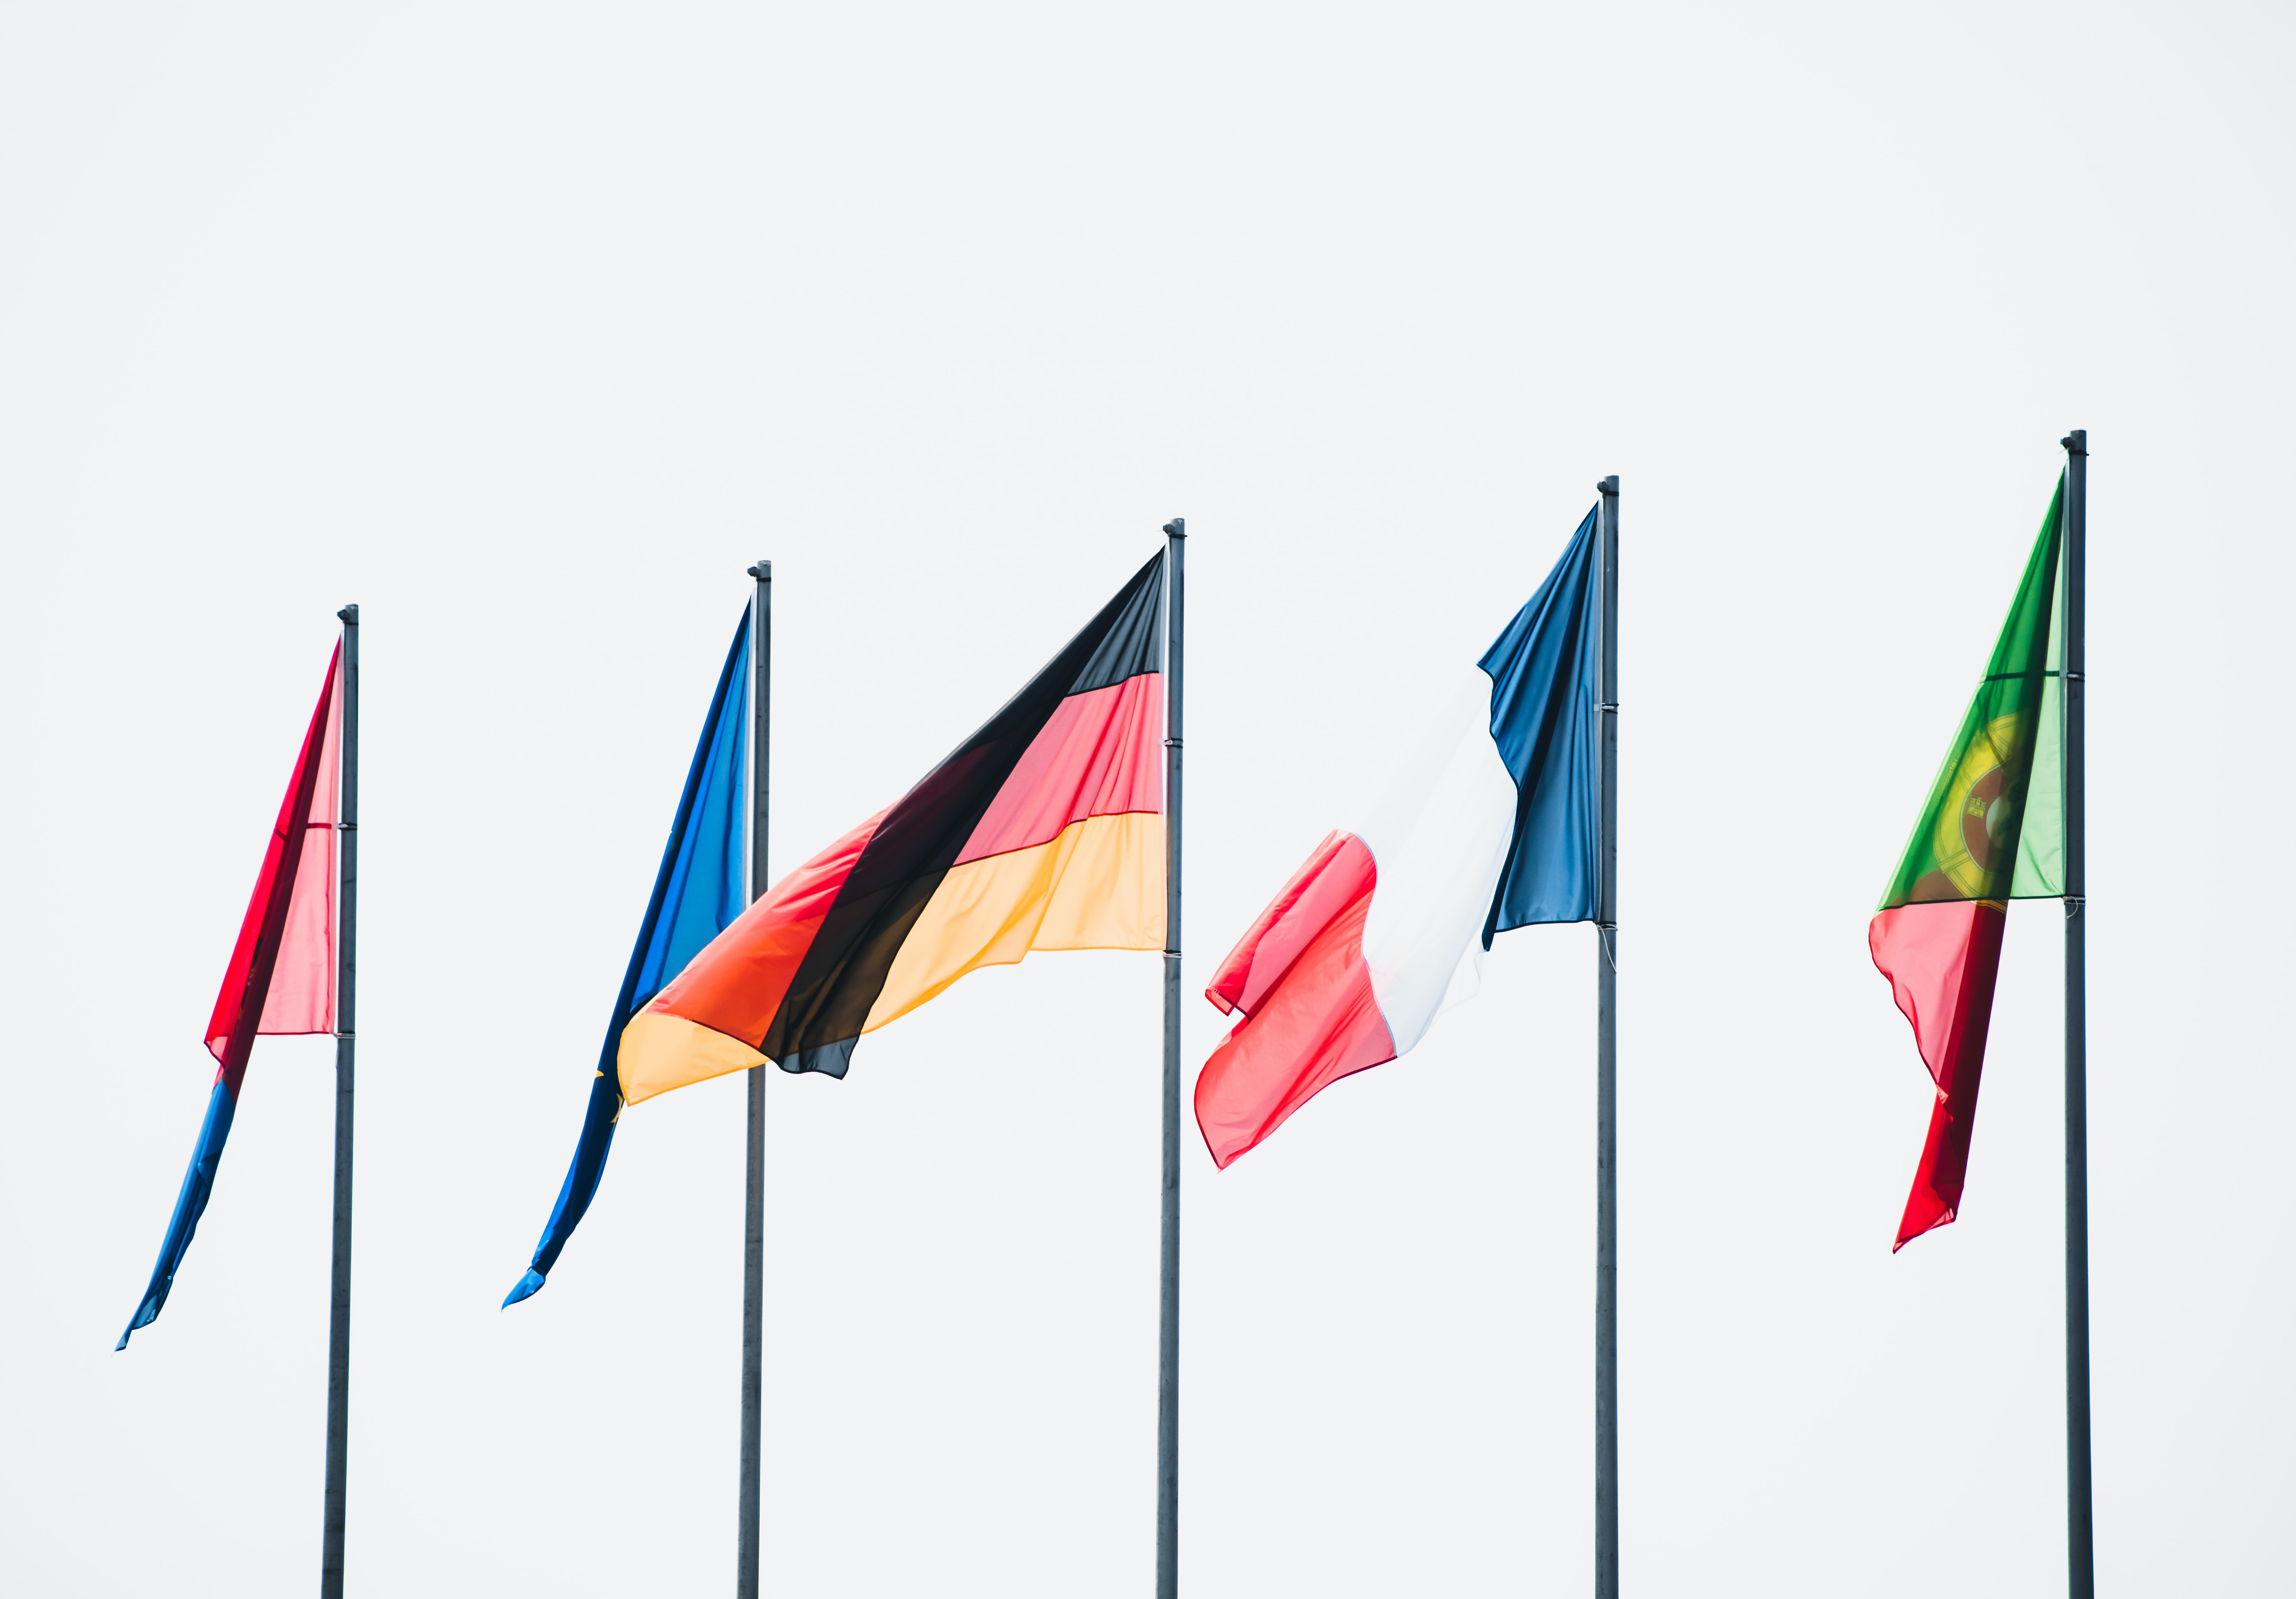 Announcing: PSCI Principles now available in 9 languages